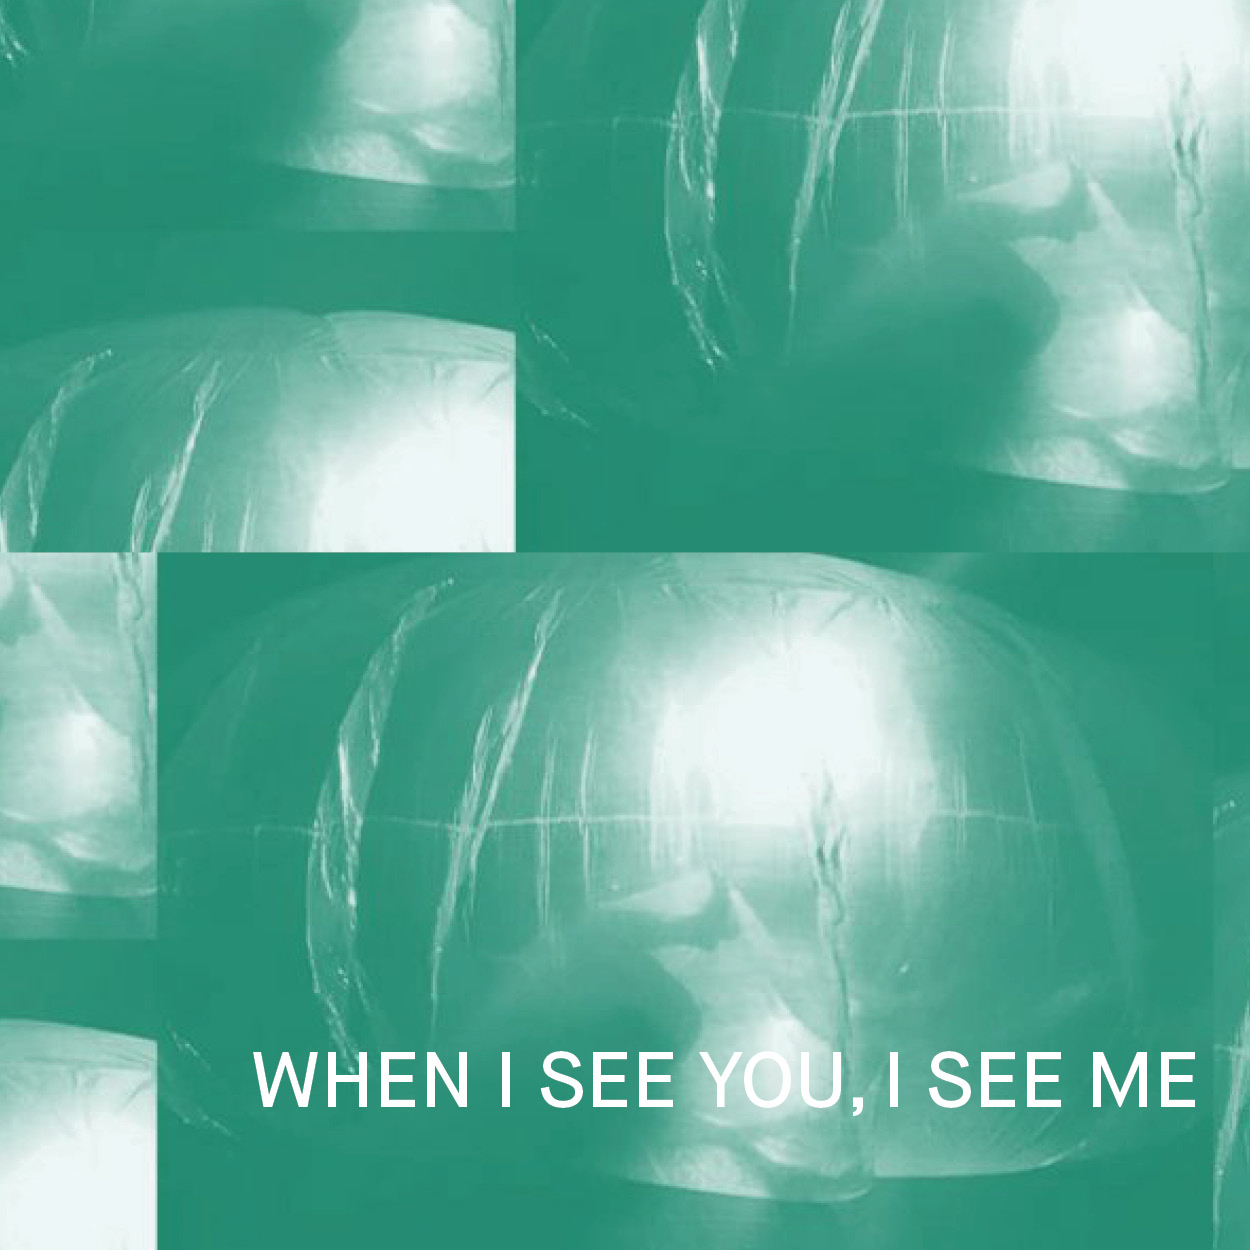 When I see you, I see me